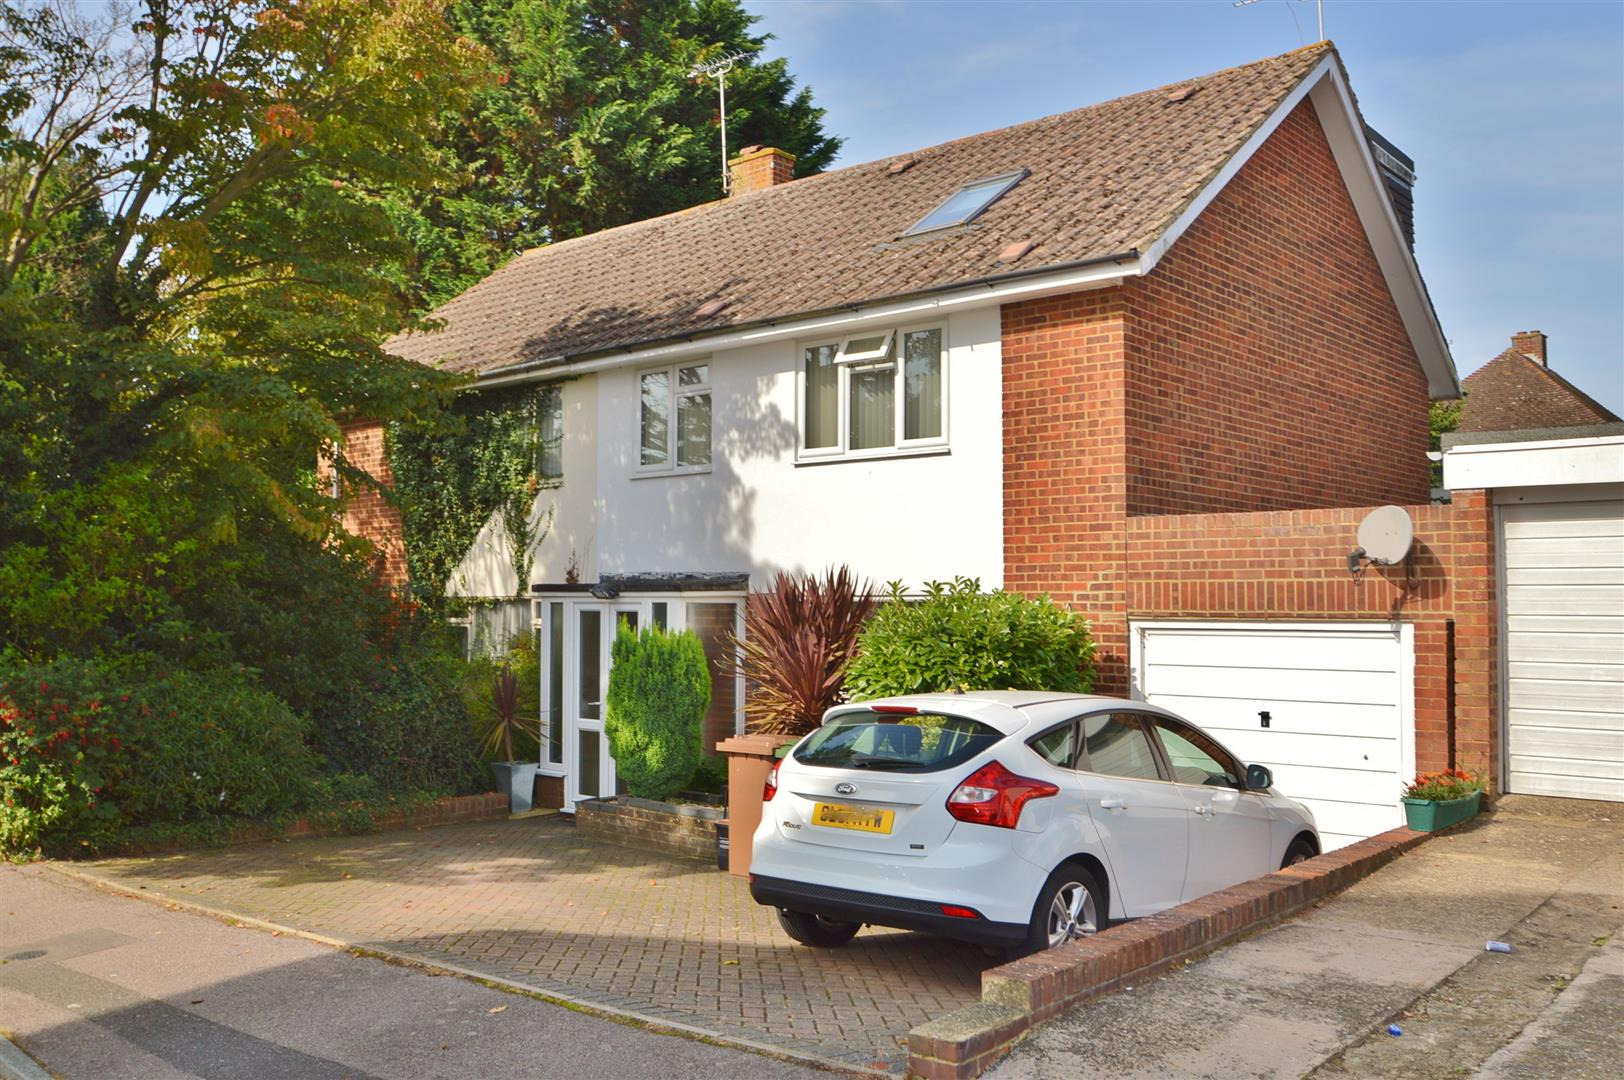 4 Bedrooms Semi Detached House for sale in Northfields, Maidstone